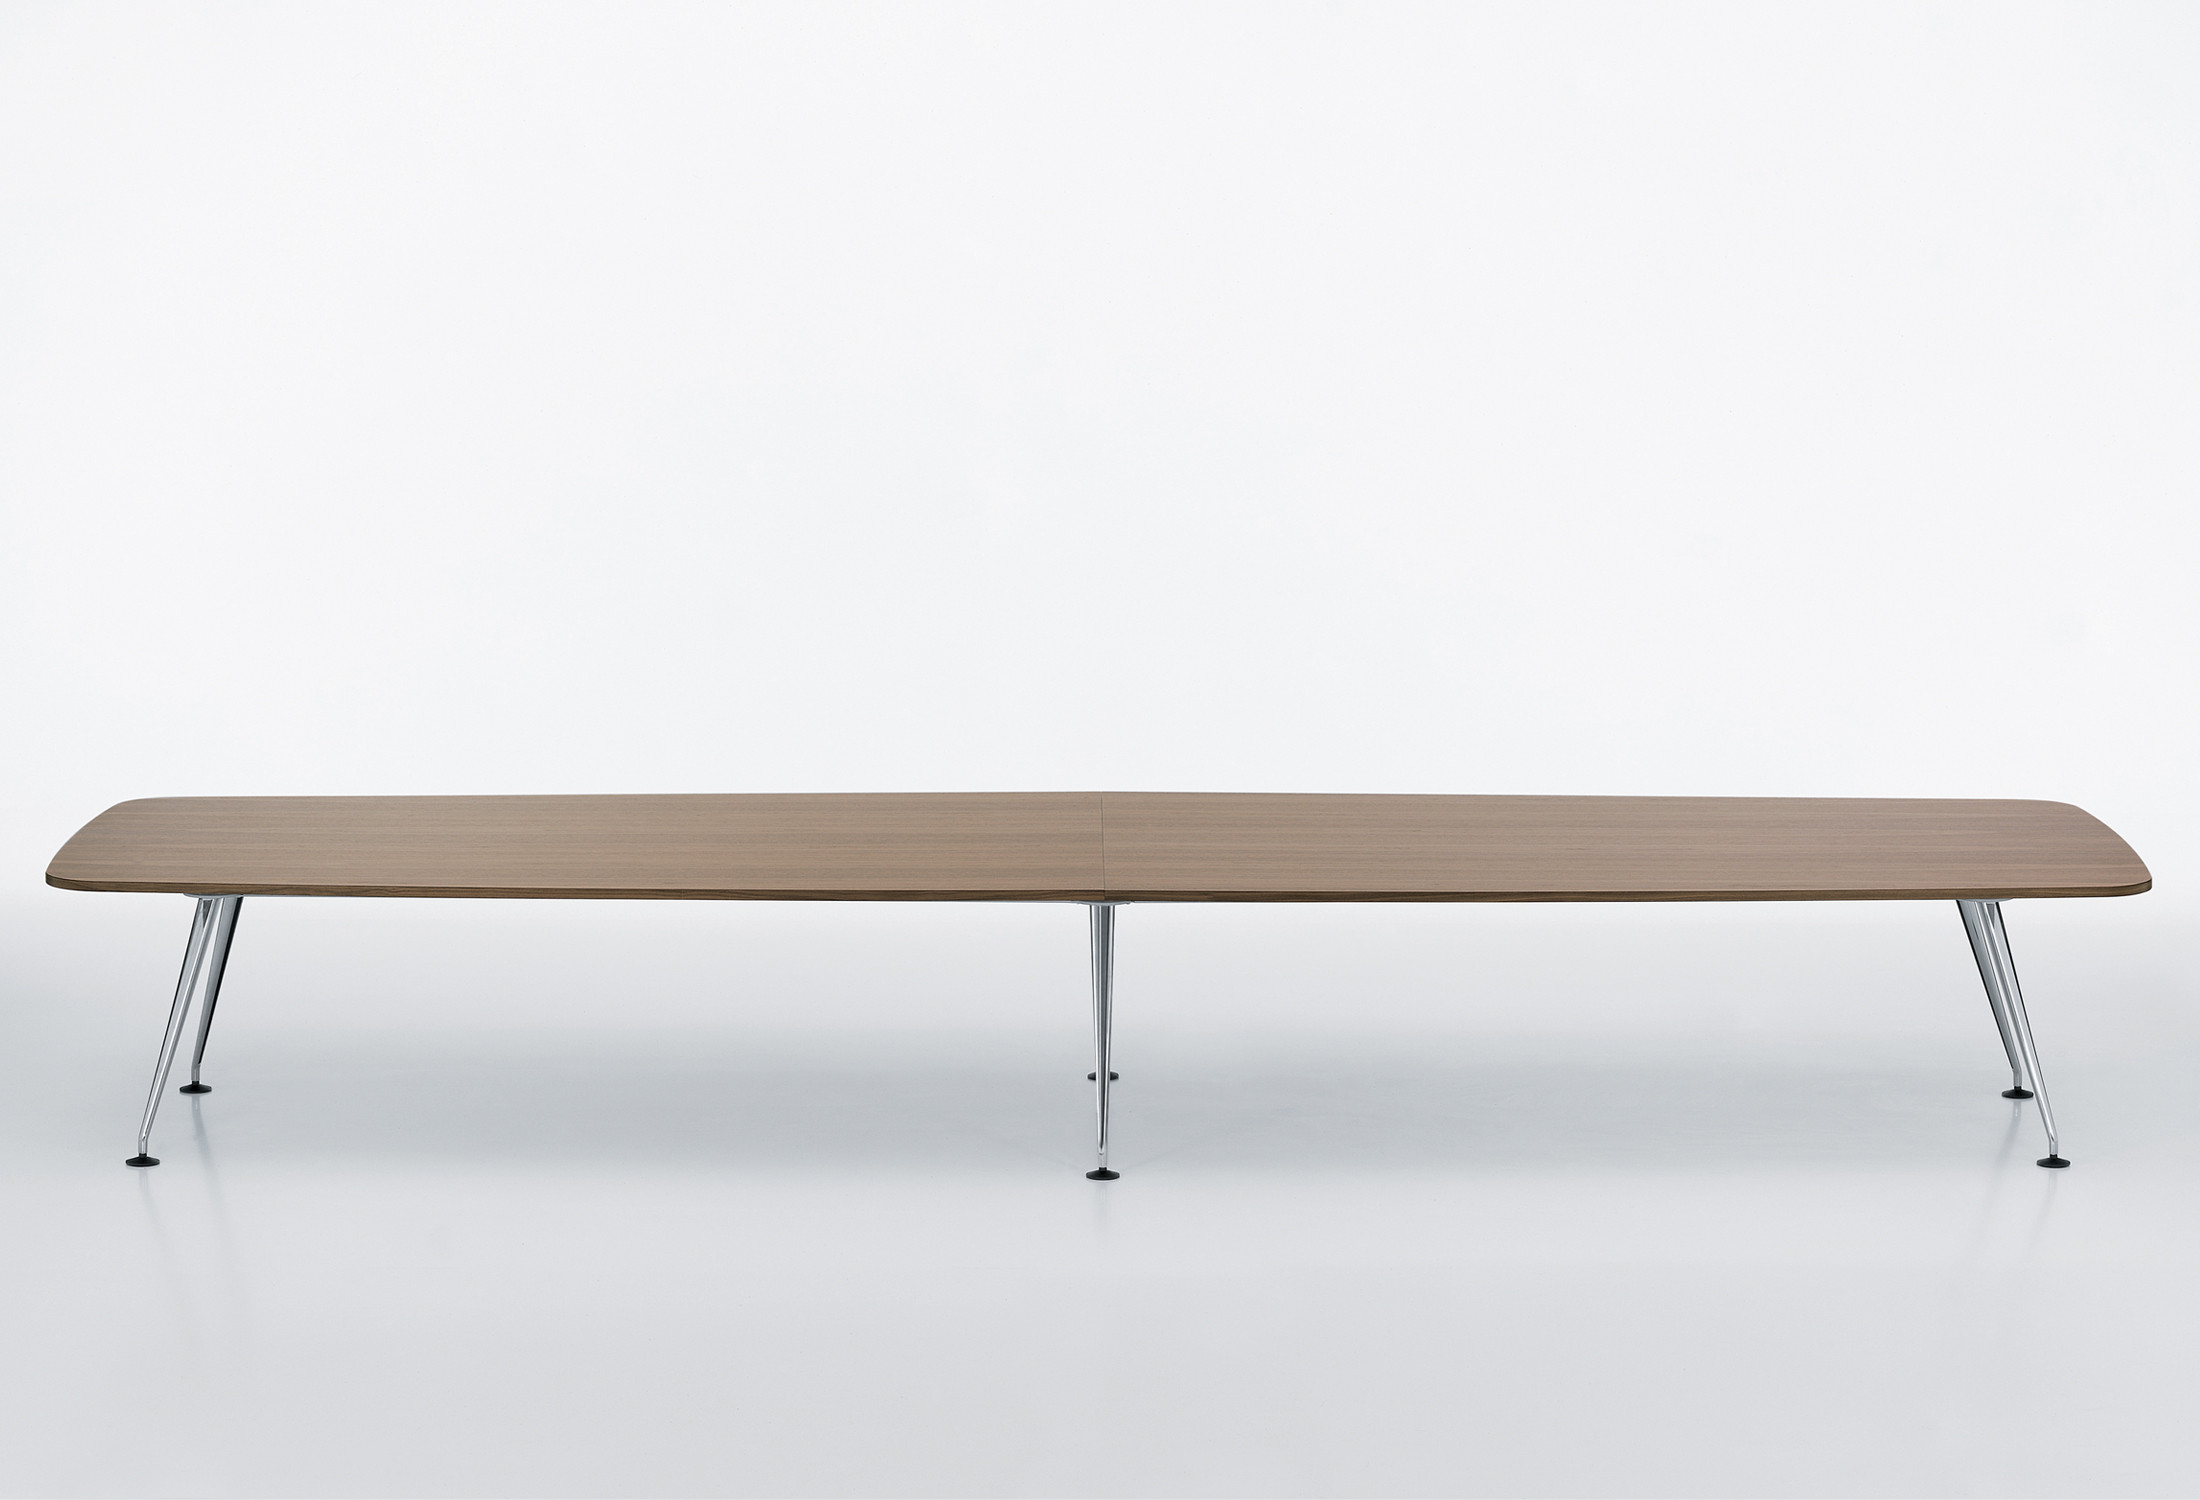 Medamorph table system conference tables apres furniture for To the table